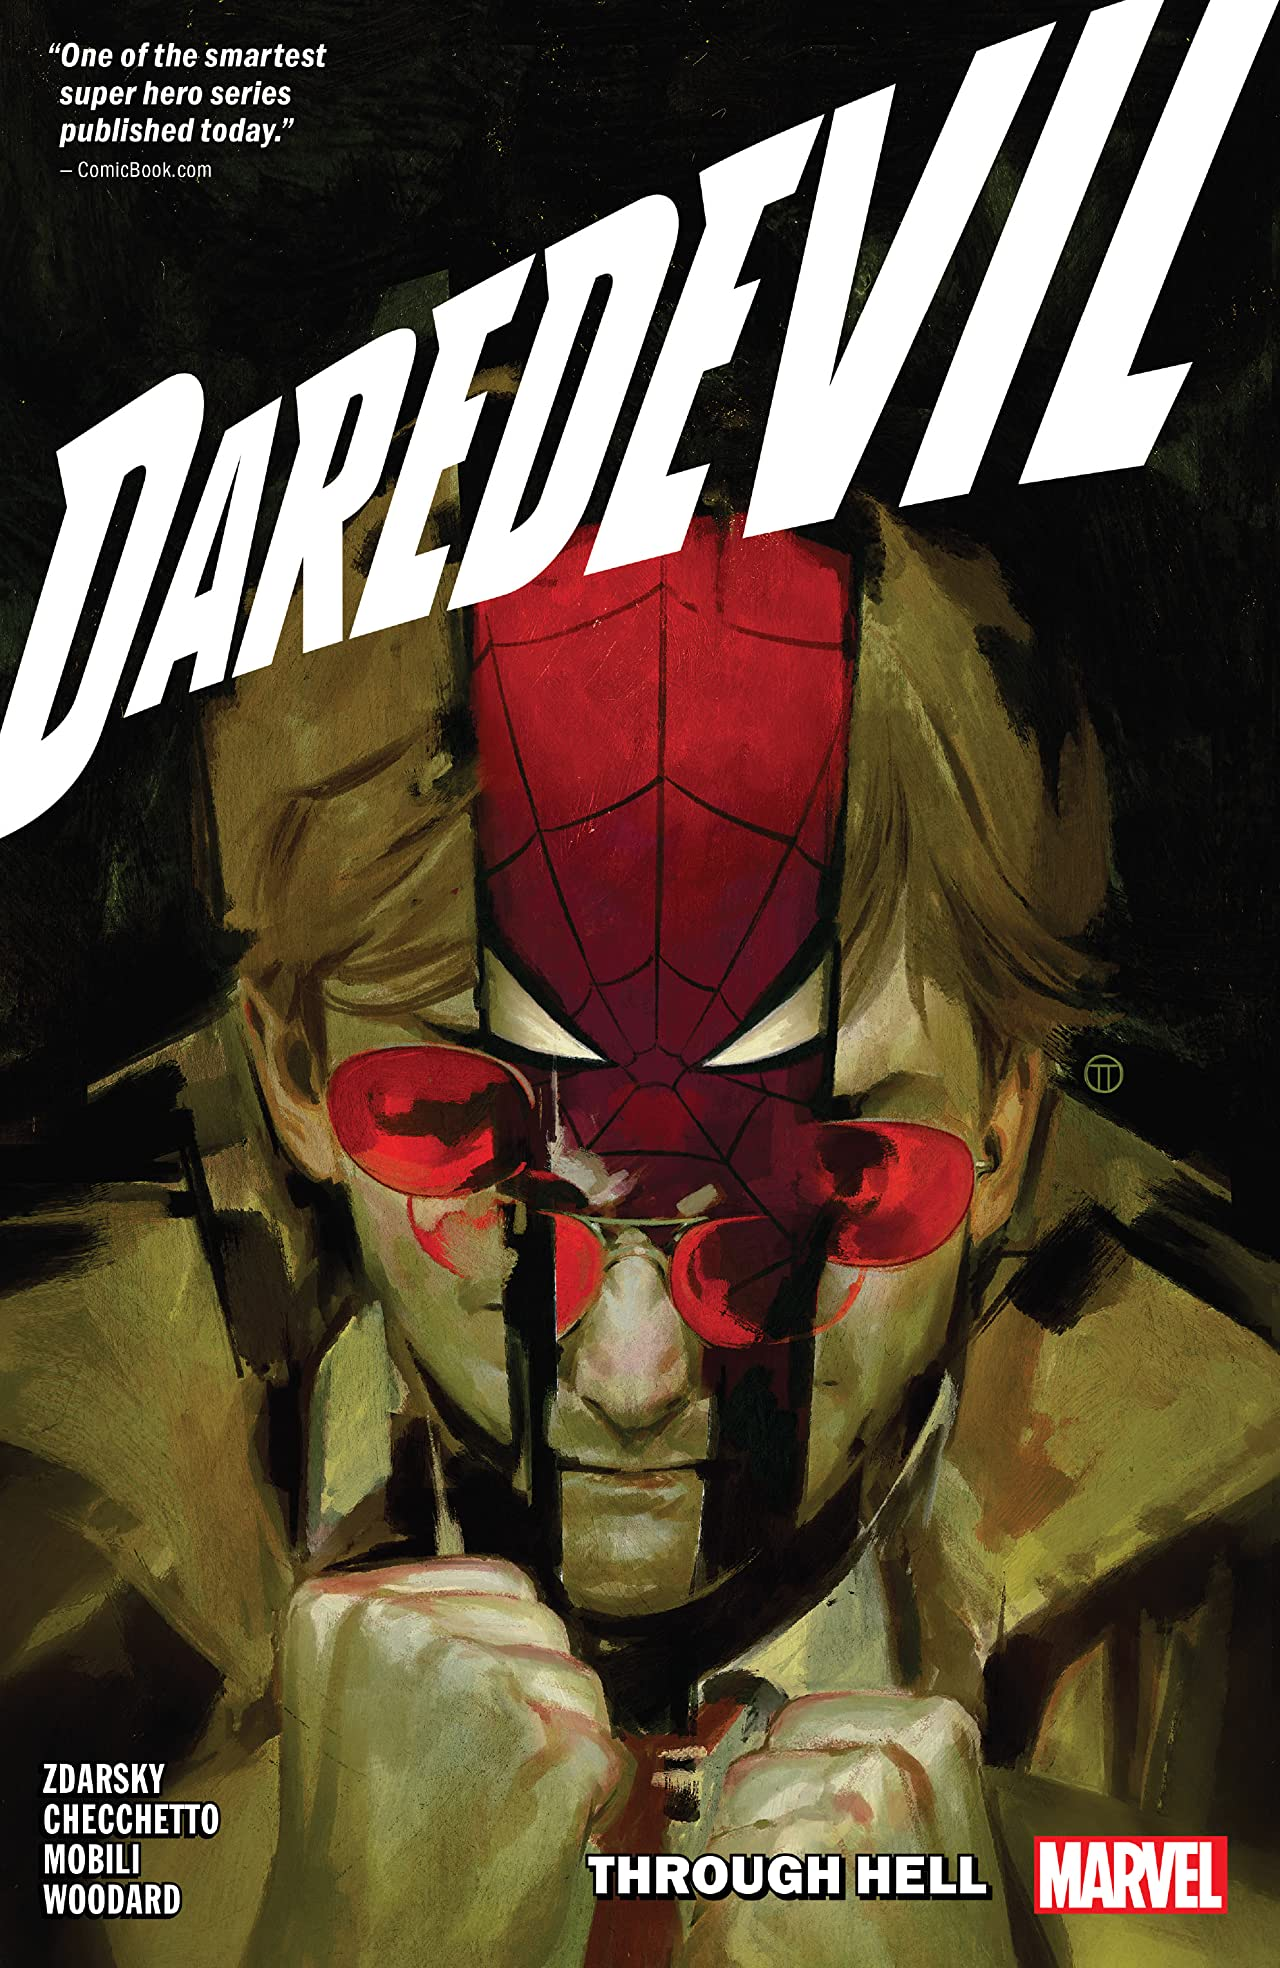 Daredevil By Chip Zdarsky Vol. 3: Through Hell (Trade Paperback)